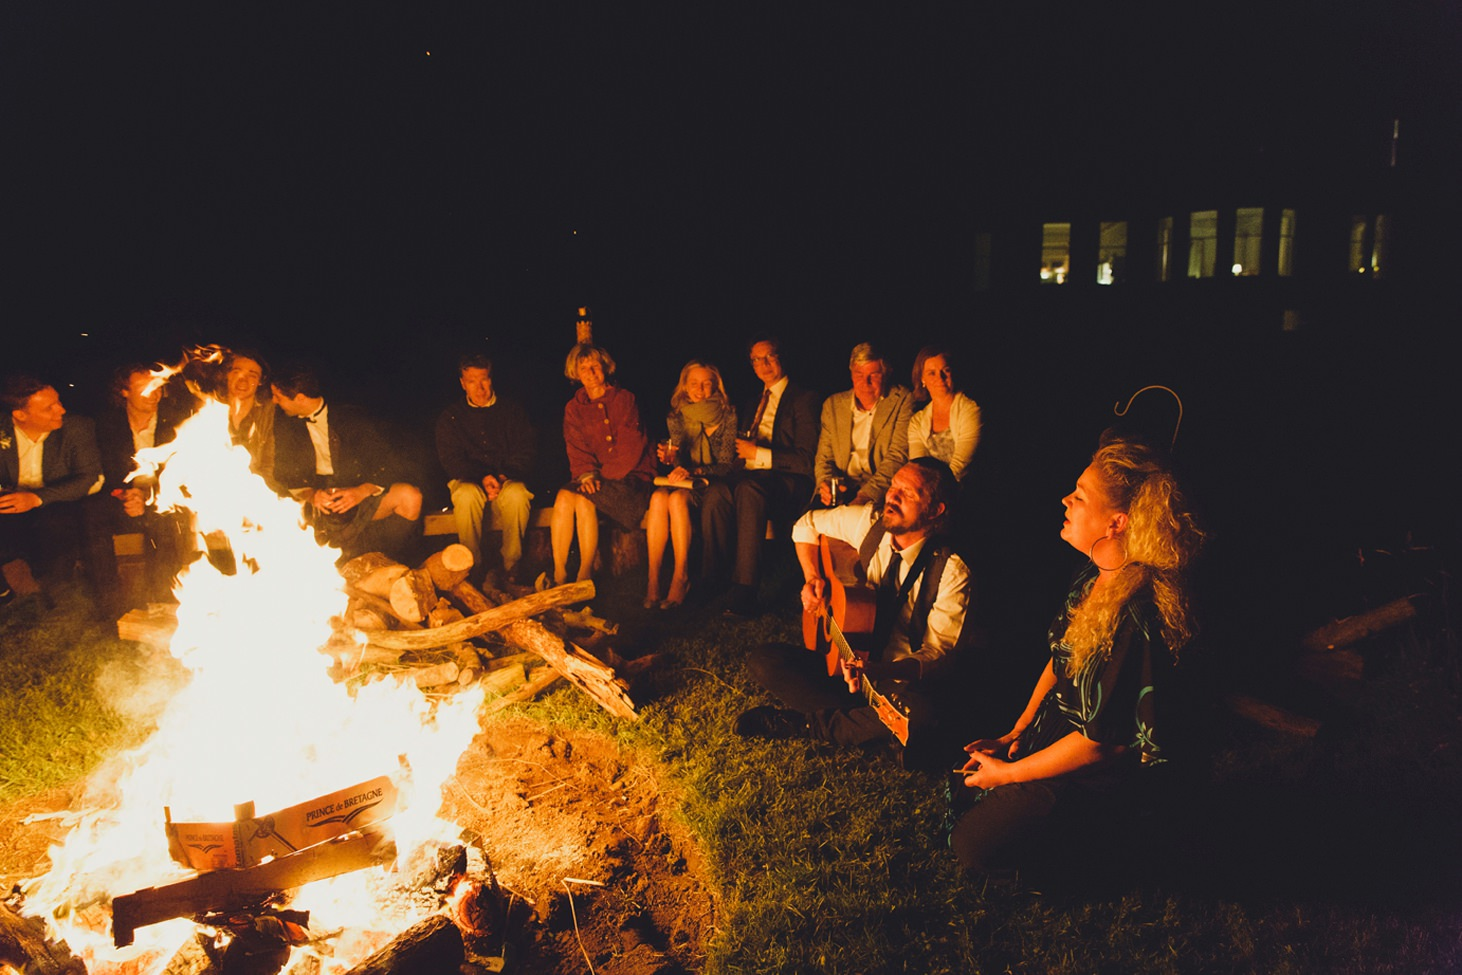 mount stuart wedding photography singing round bonfire